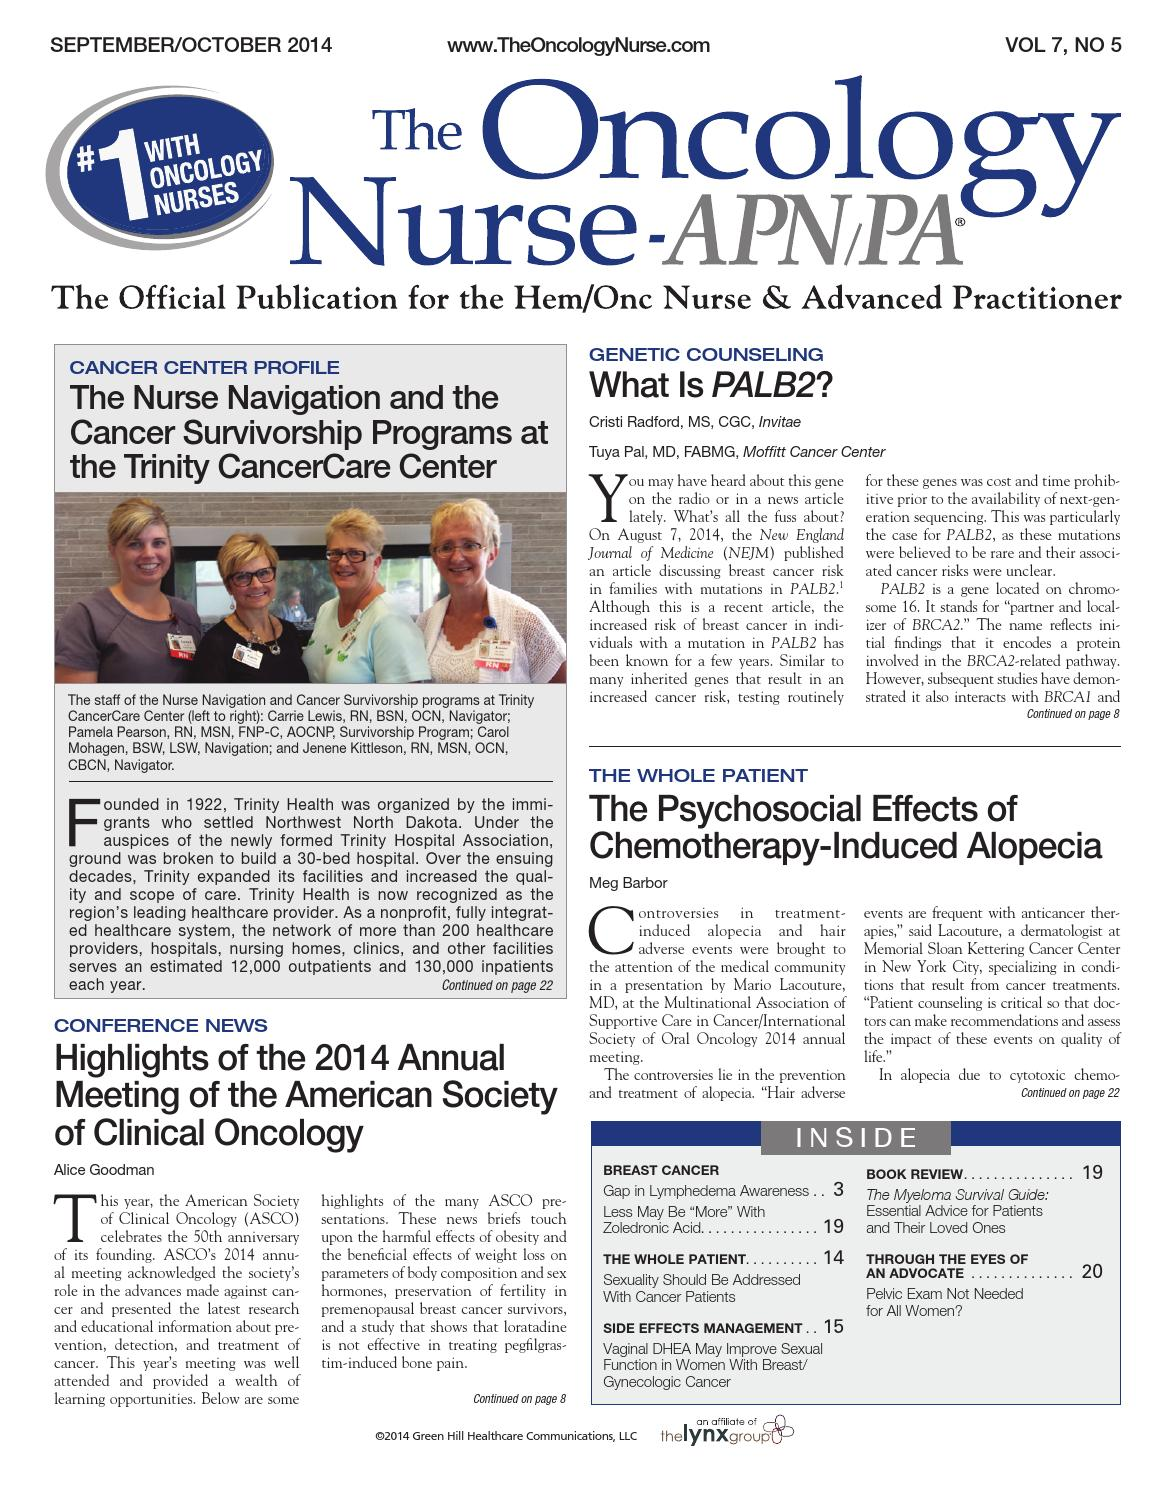 The Oncology Nurse September/October 2014 by The Oncology Nurse - issuu